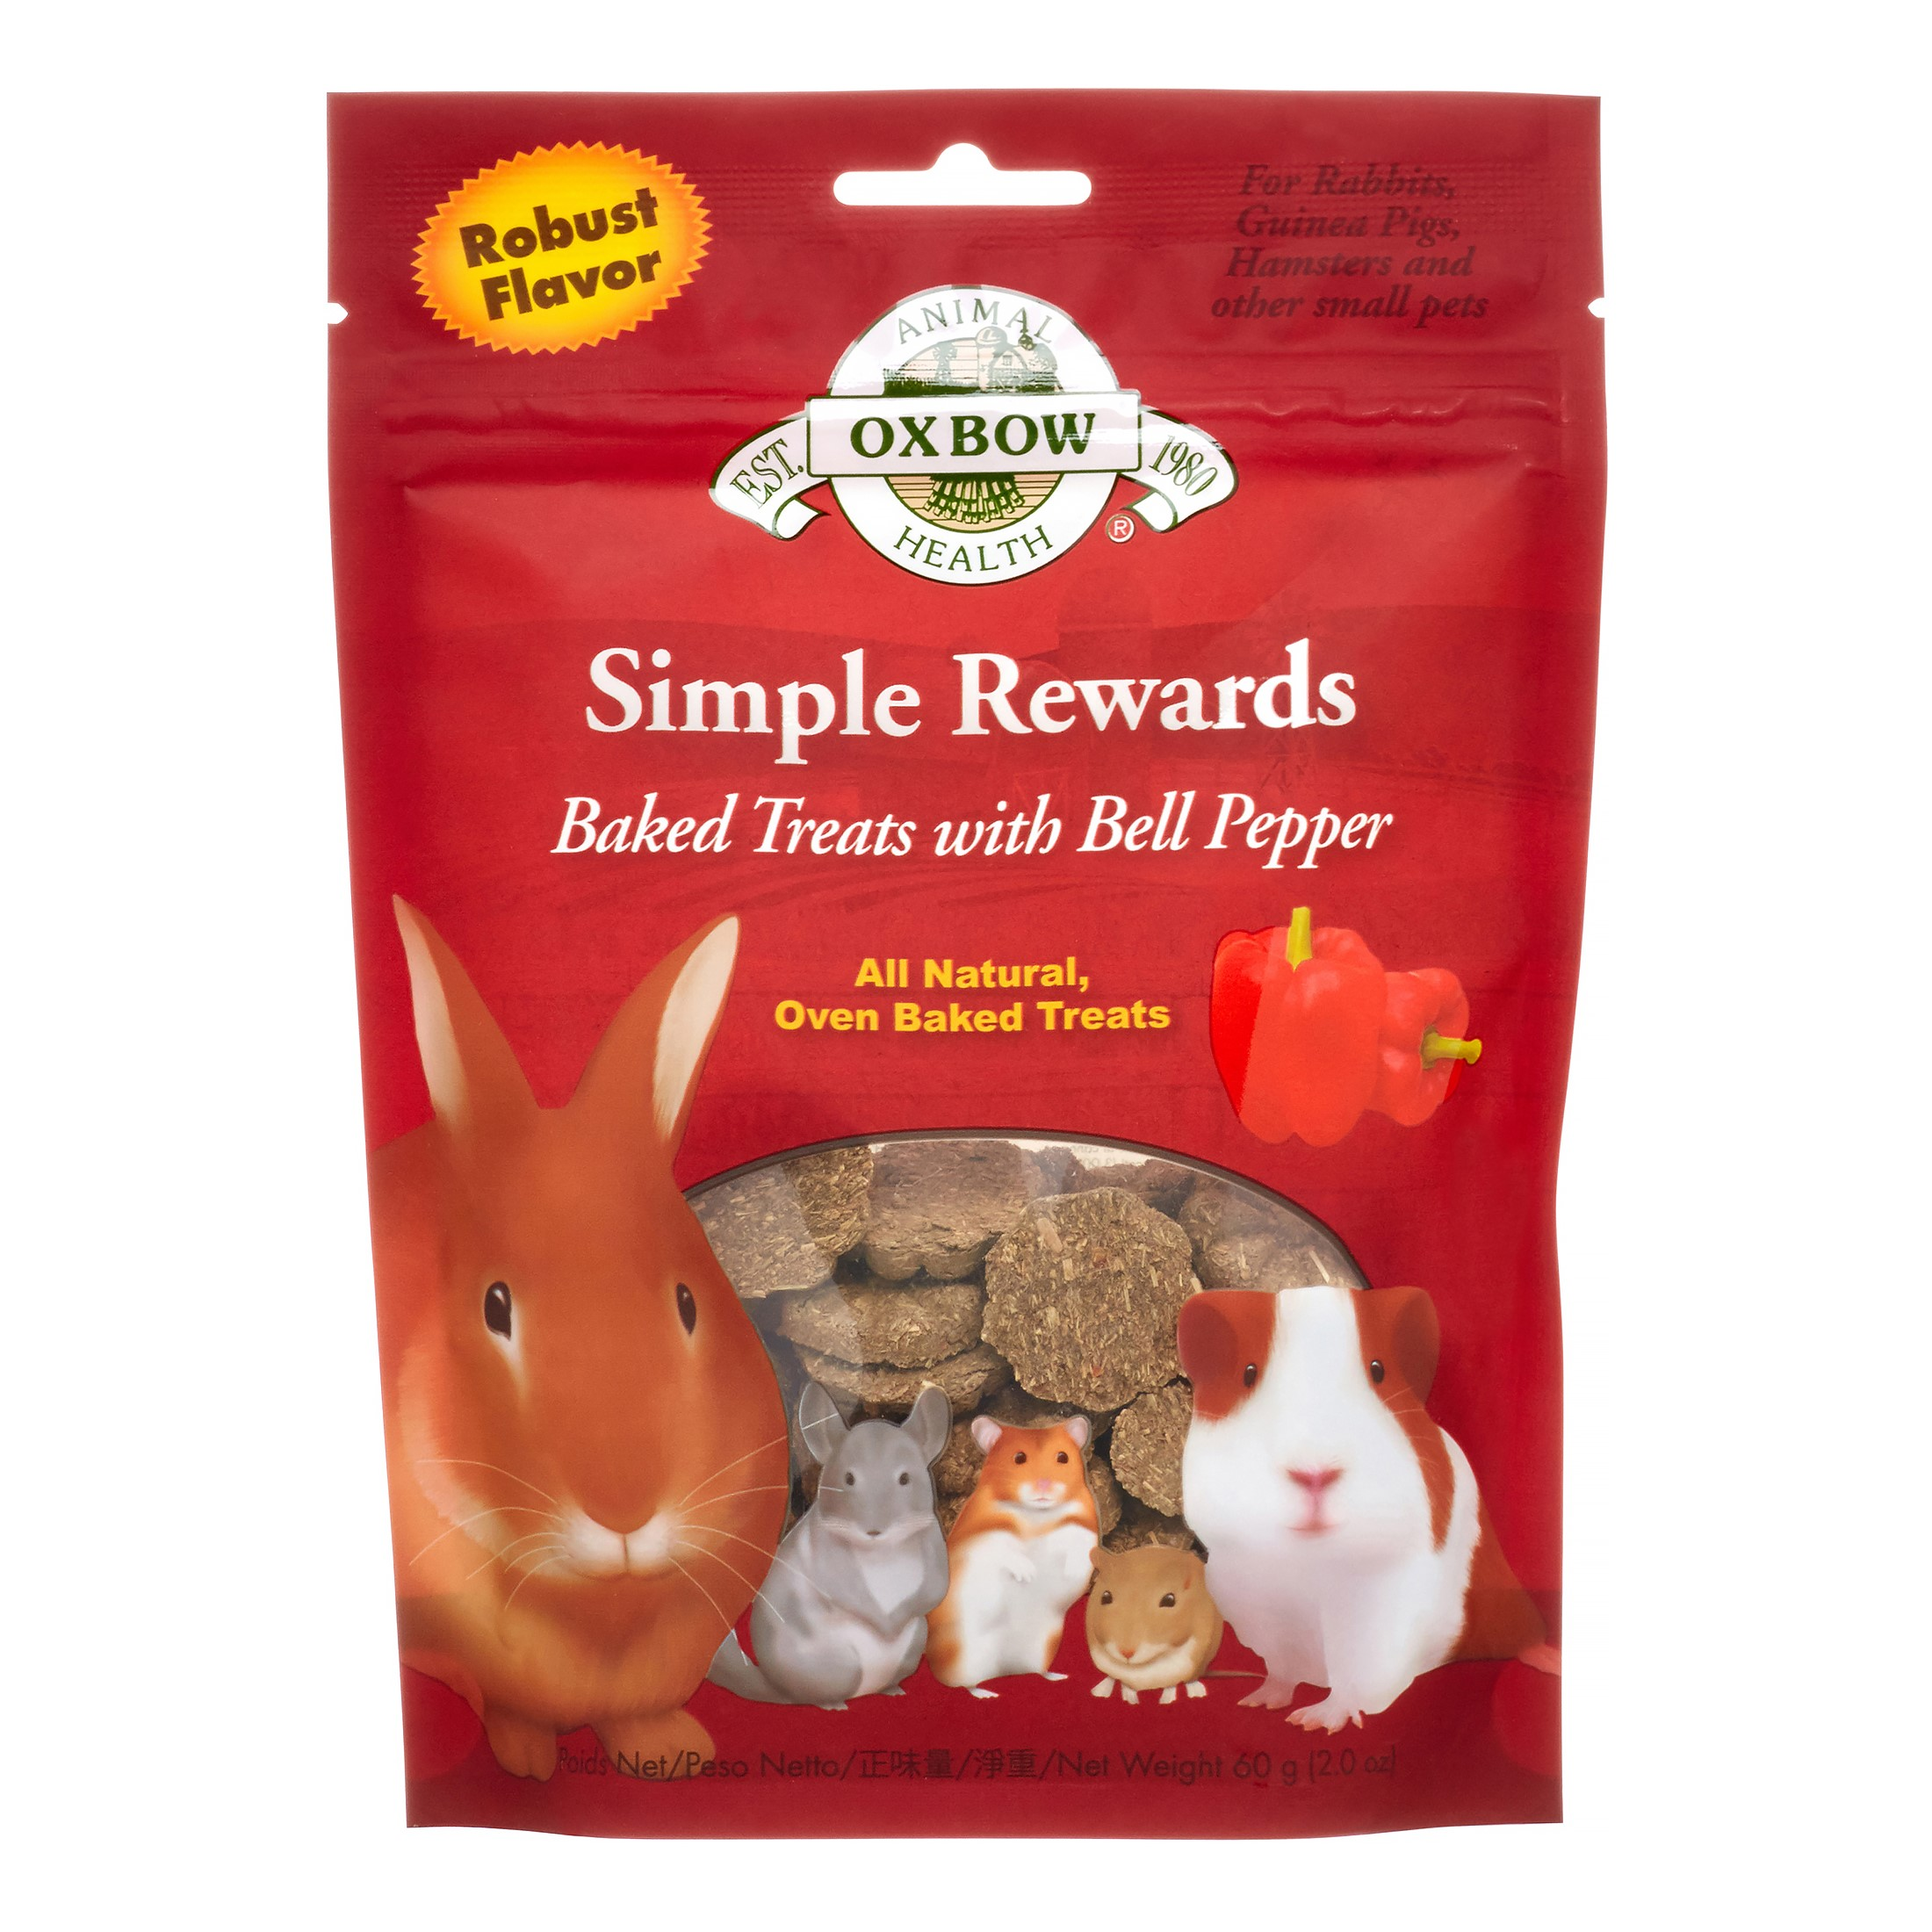 Oxbow Simple Rewards Baked with Bell Pepper Small Animal Treats, 2 Oz